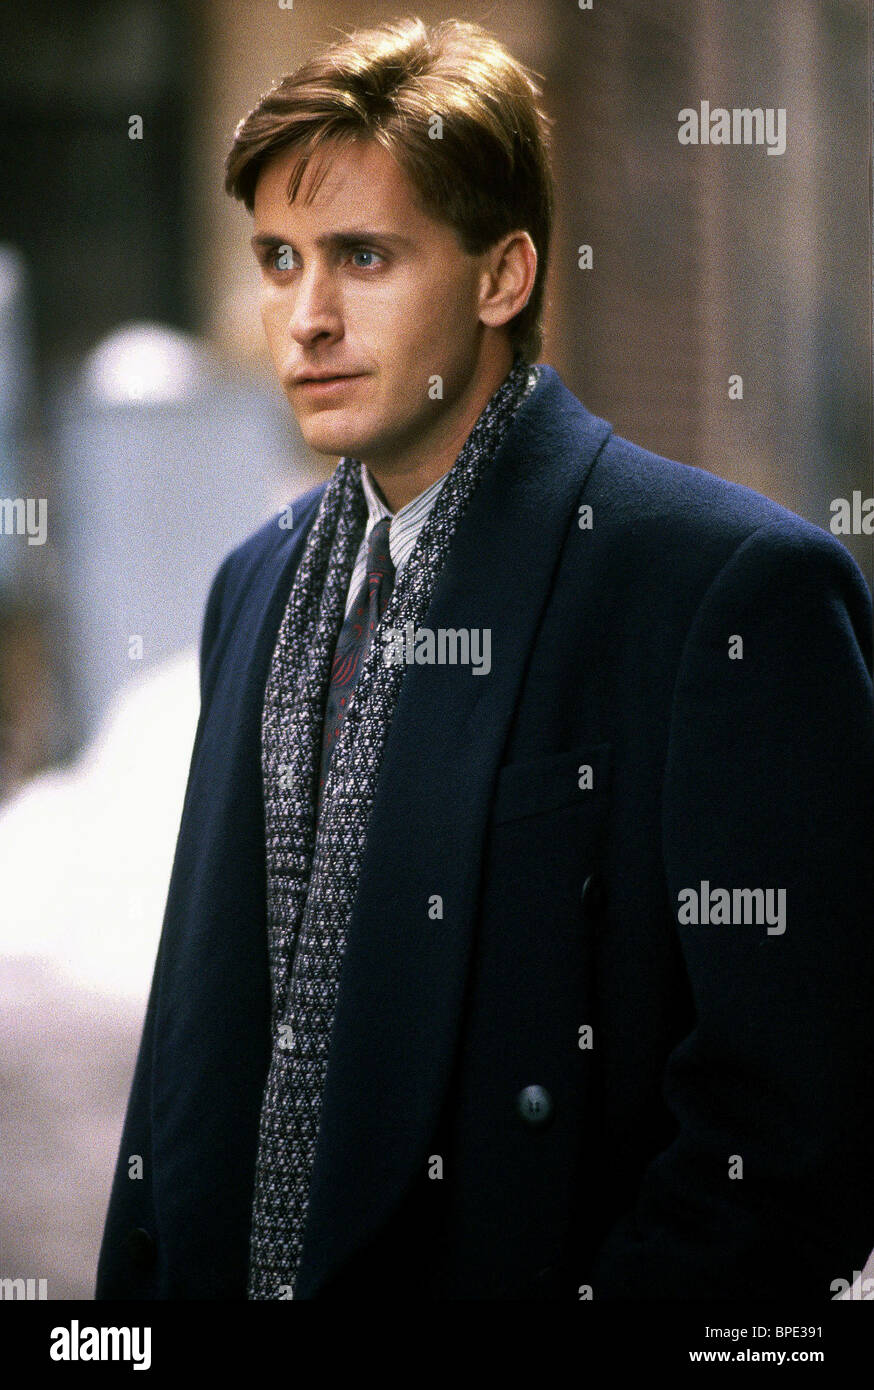 emilio estevez the mighty ducks 1992 stock photo royalty